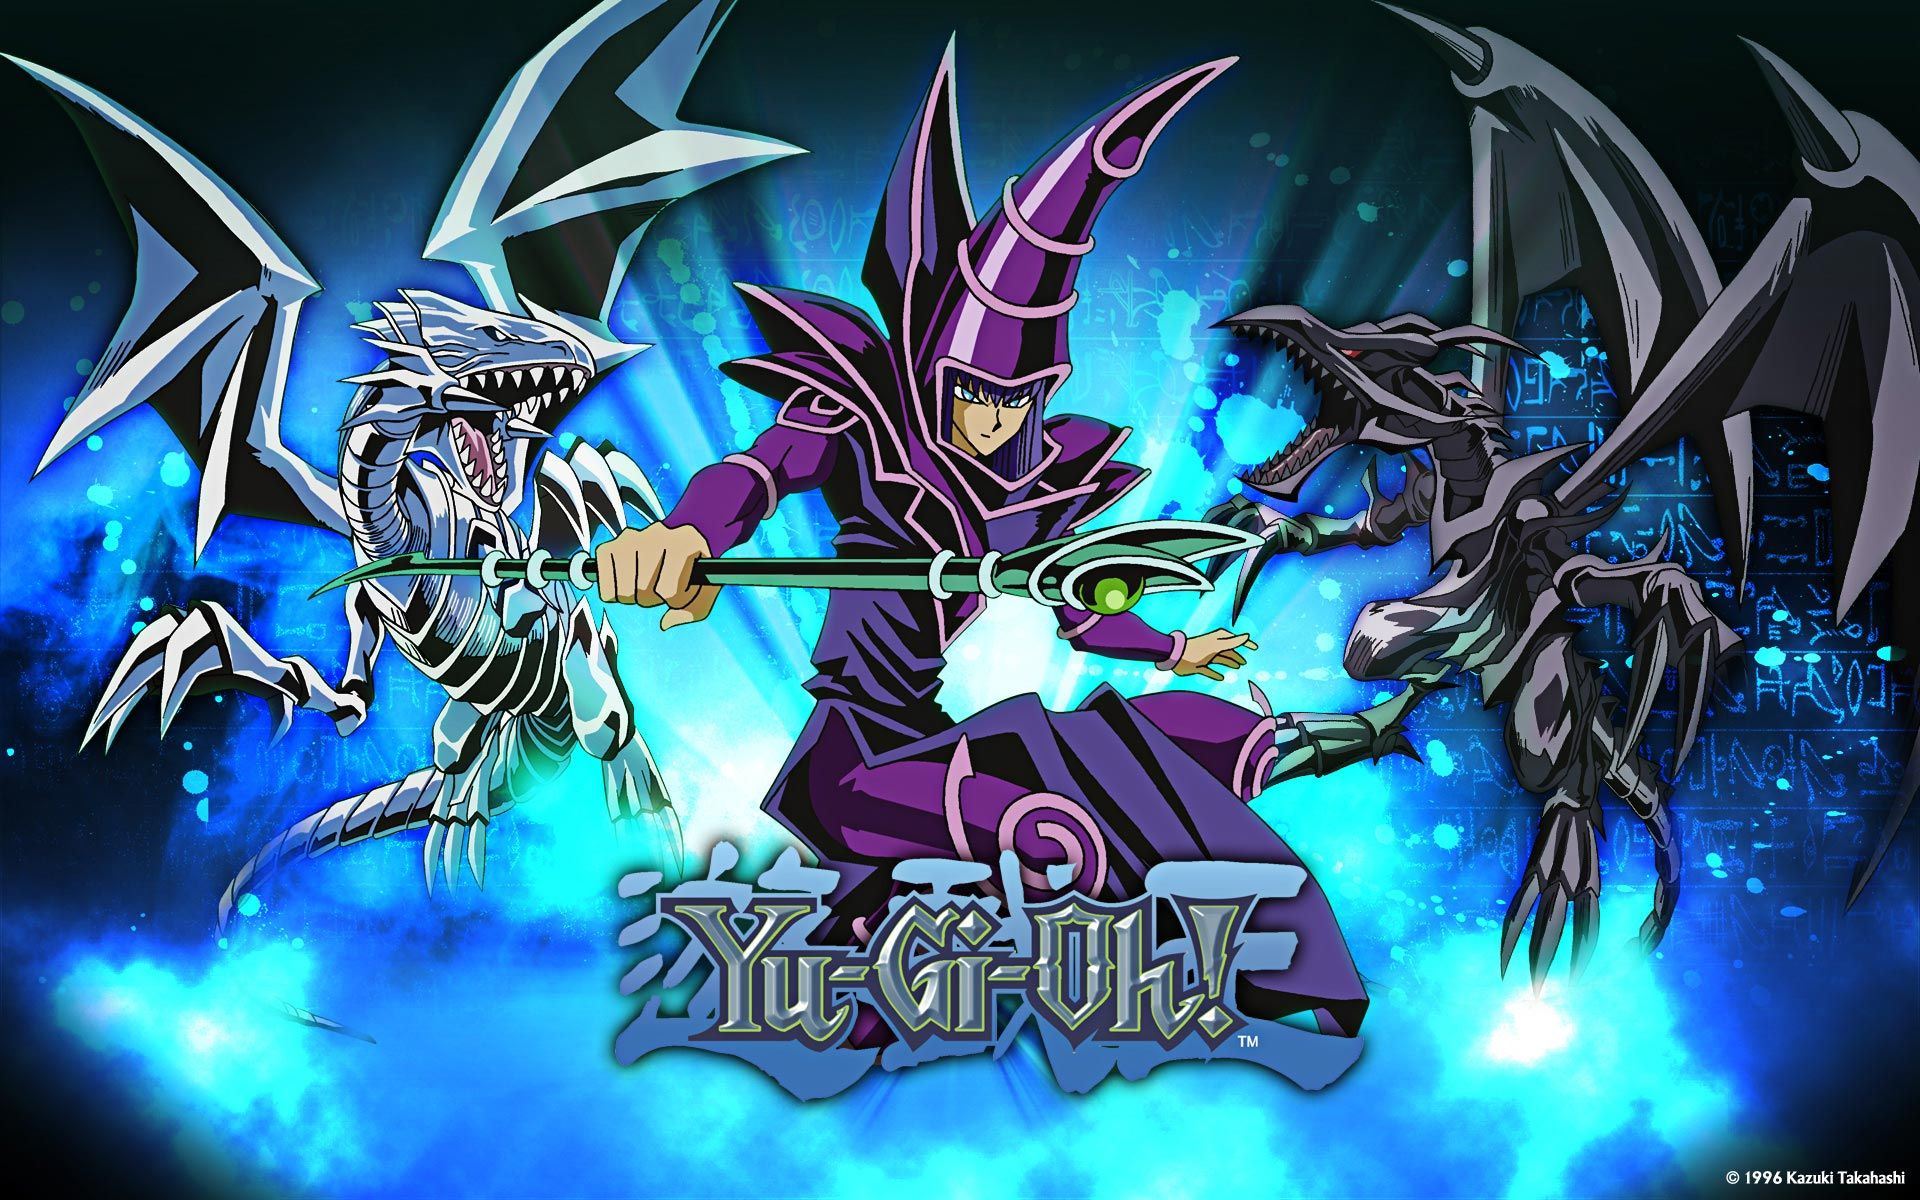 Yugioh Wallpapers   Full HD wallpaper search yes Anime Hd 1920x1200